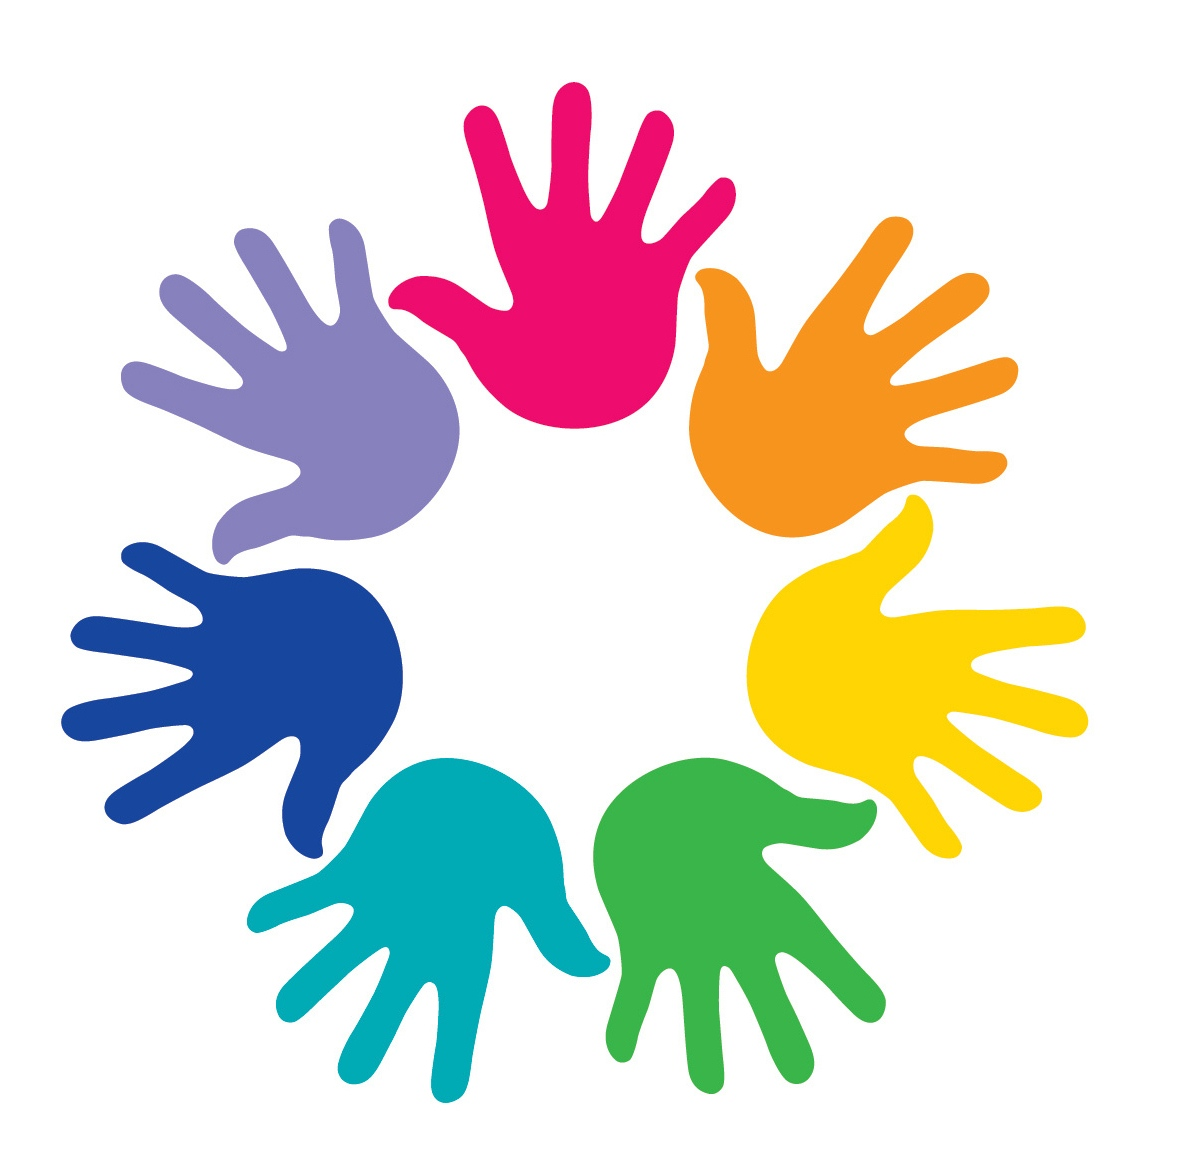 Progress Study on Youth Peace and Security - colored hands in a circle